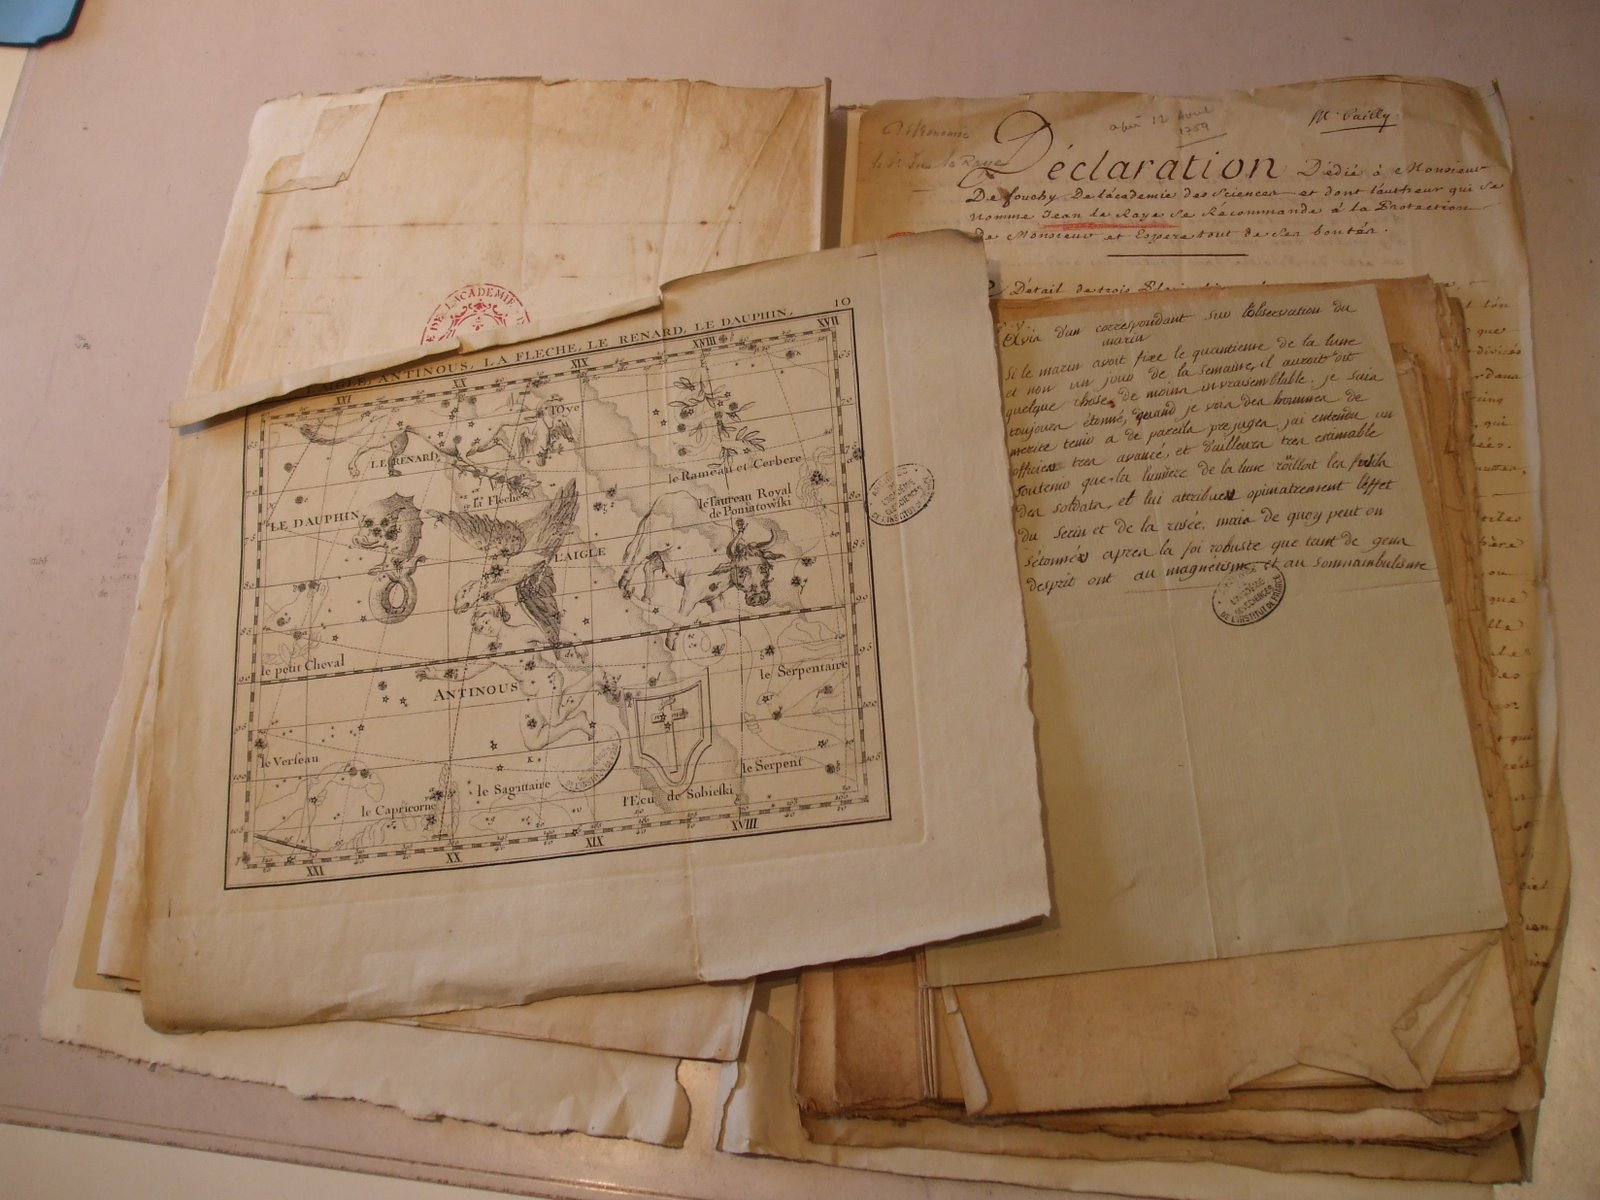 400-Year-Old Documents